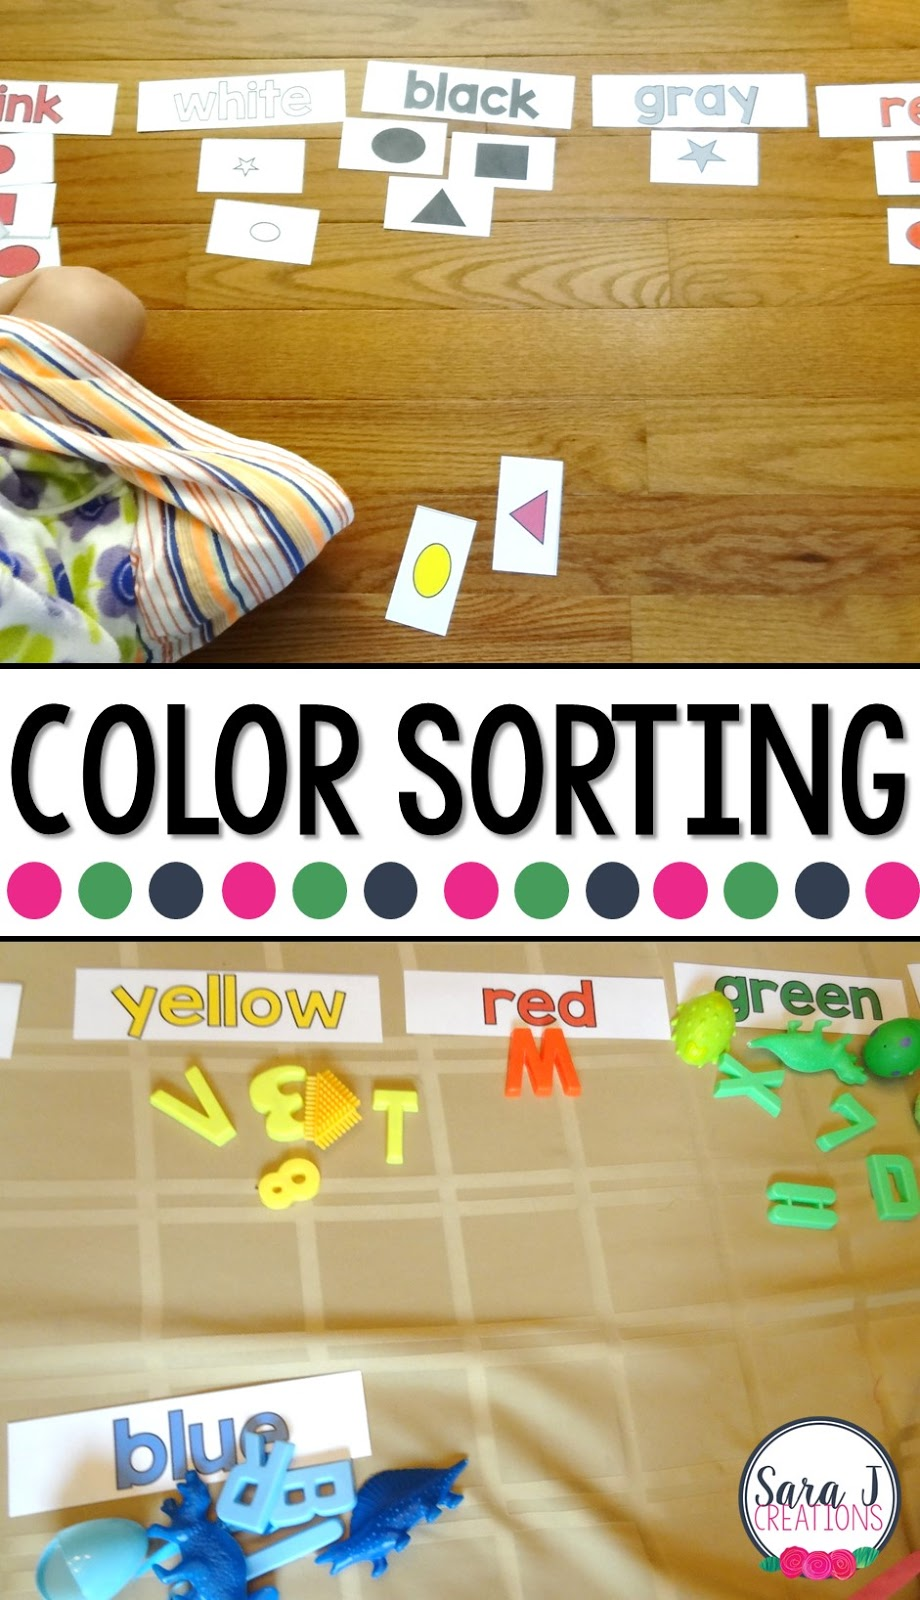 Color sorting activities that make perfect learning fun for toddler and preschool aged kids.